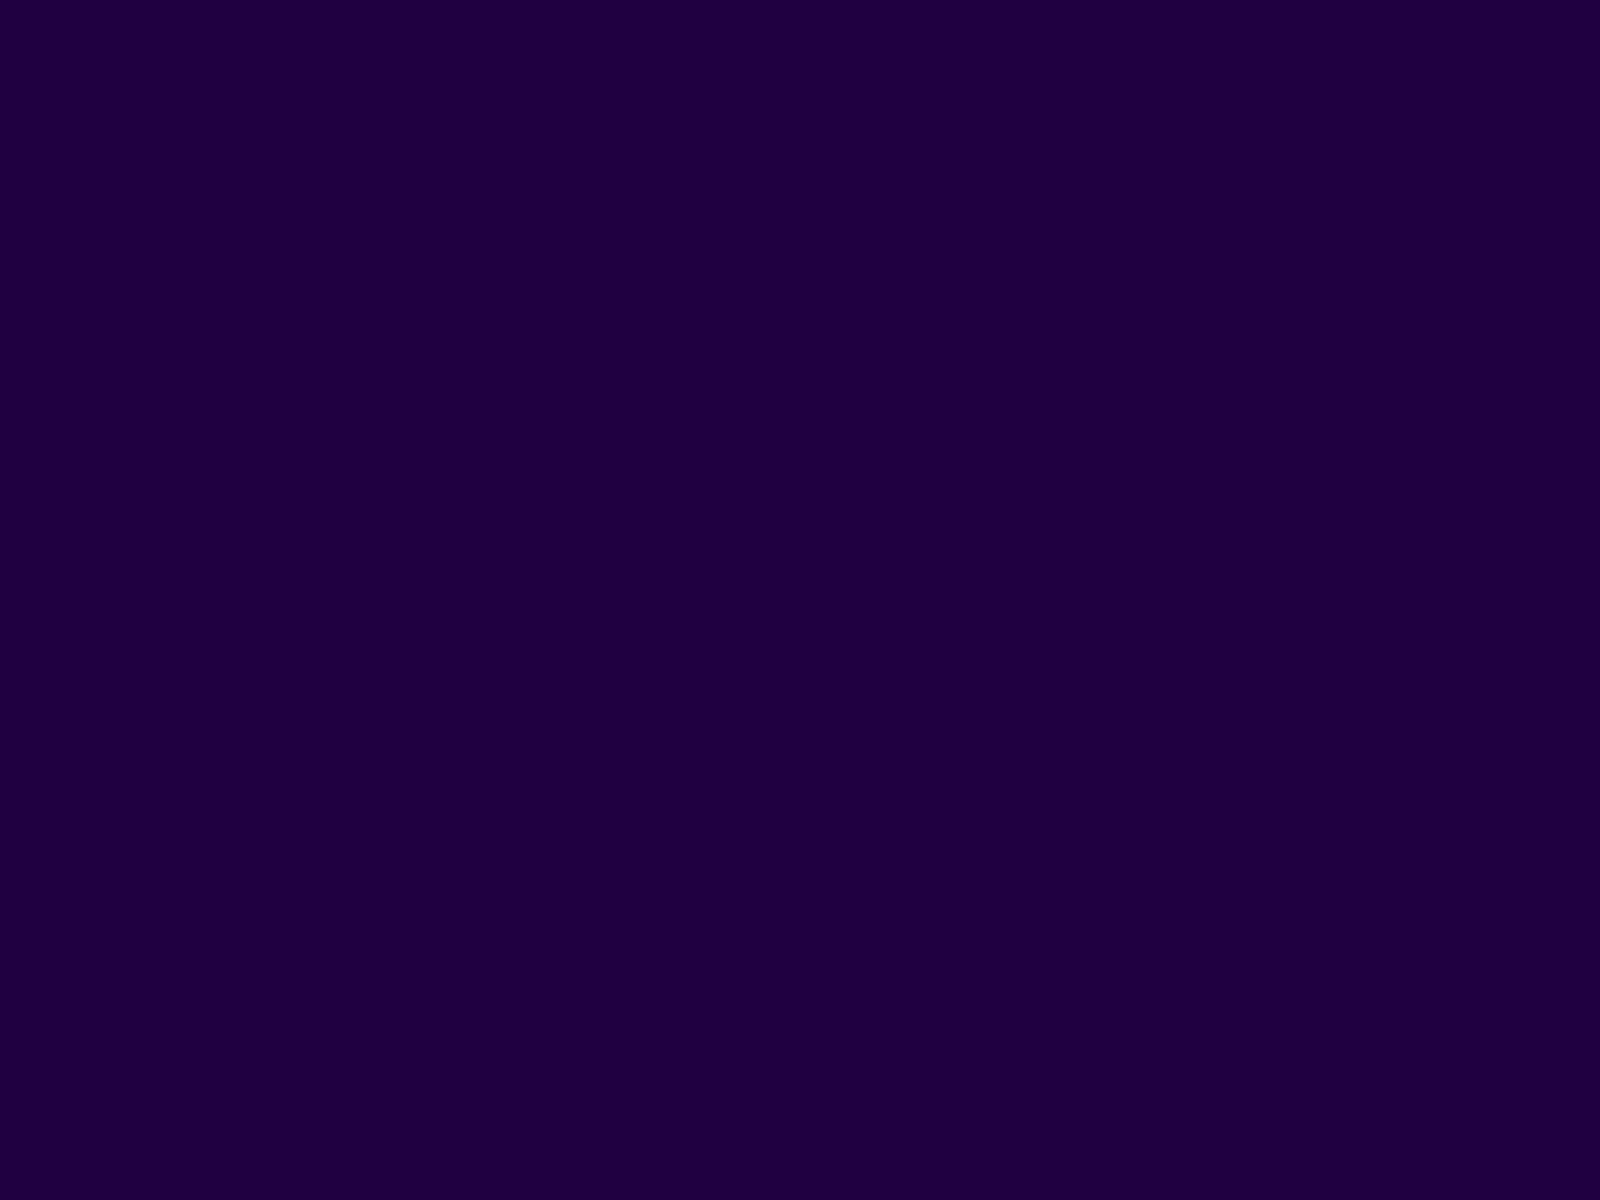 ultra violet die pantone farbe des jahres 2018 sabine gimm. Black Bedroom Furniture Sets. Home Design Ideas